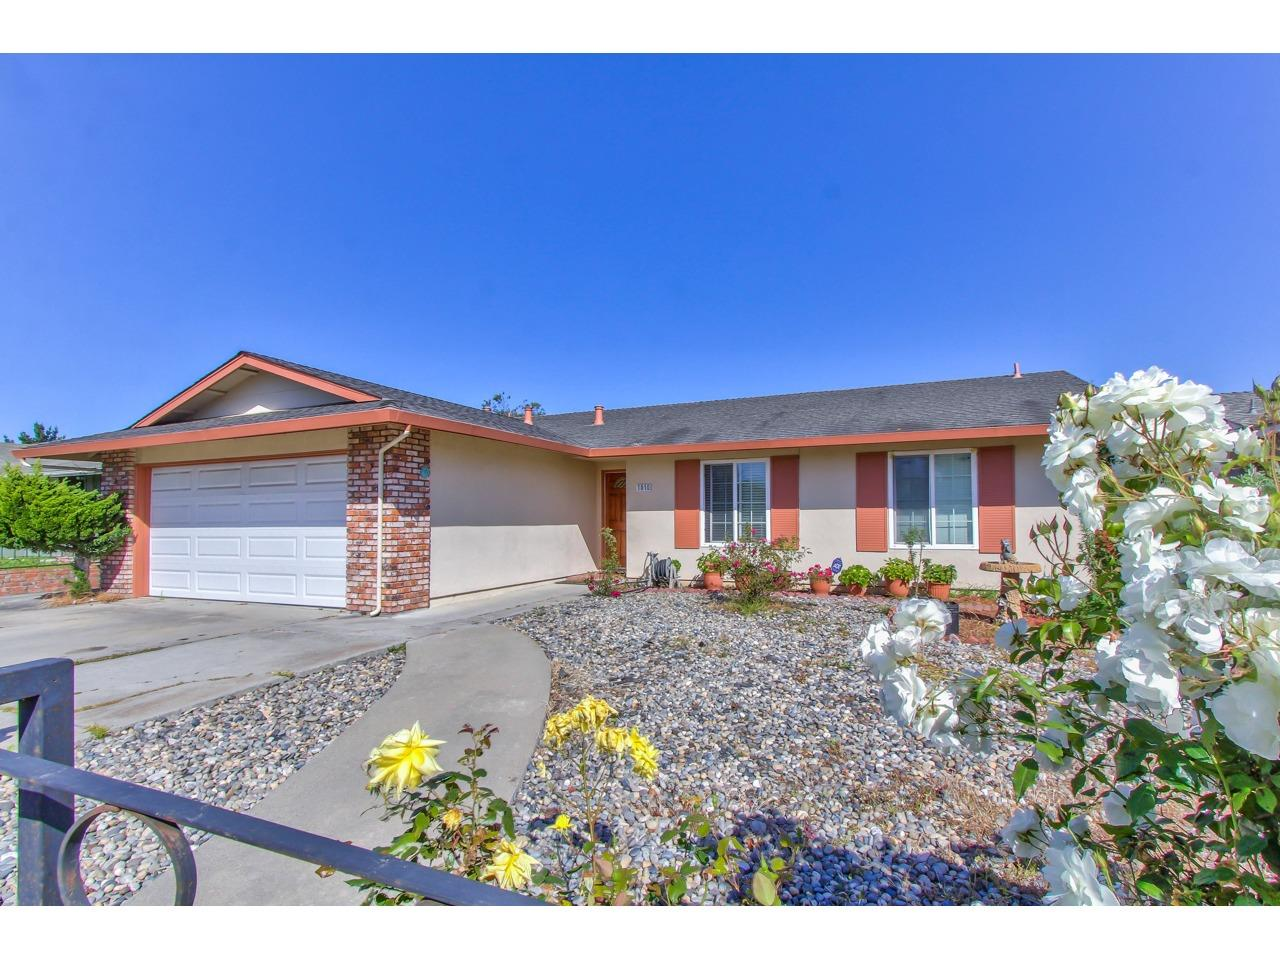 Detail Gallery Image 1 of 1 For 1010 Sherman Dr, Salinas, CA, 93907 - 3 Beds | 2 Baths